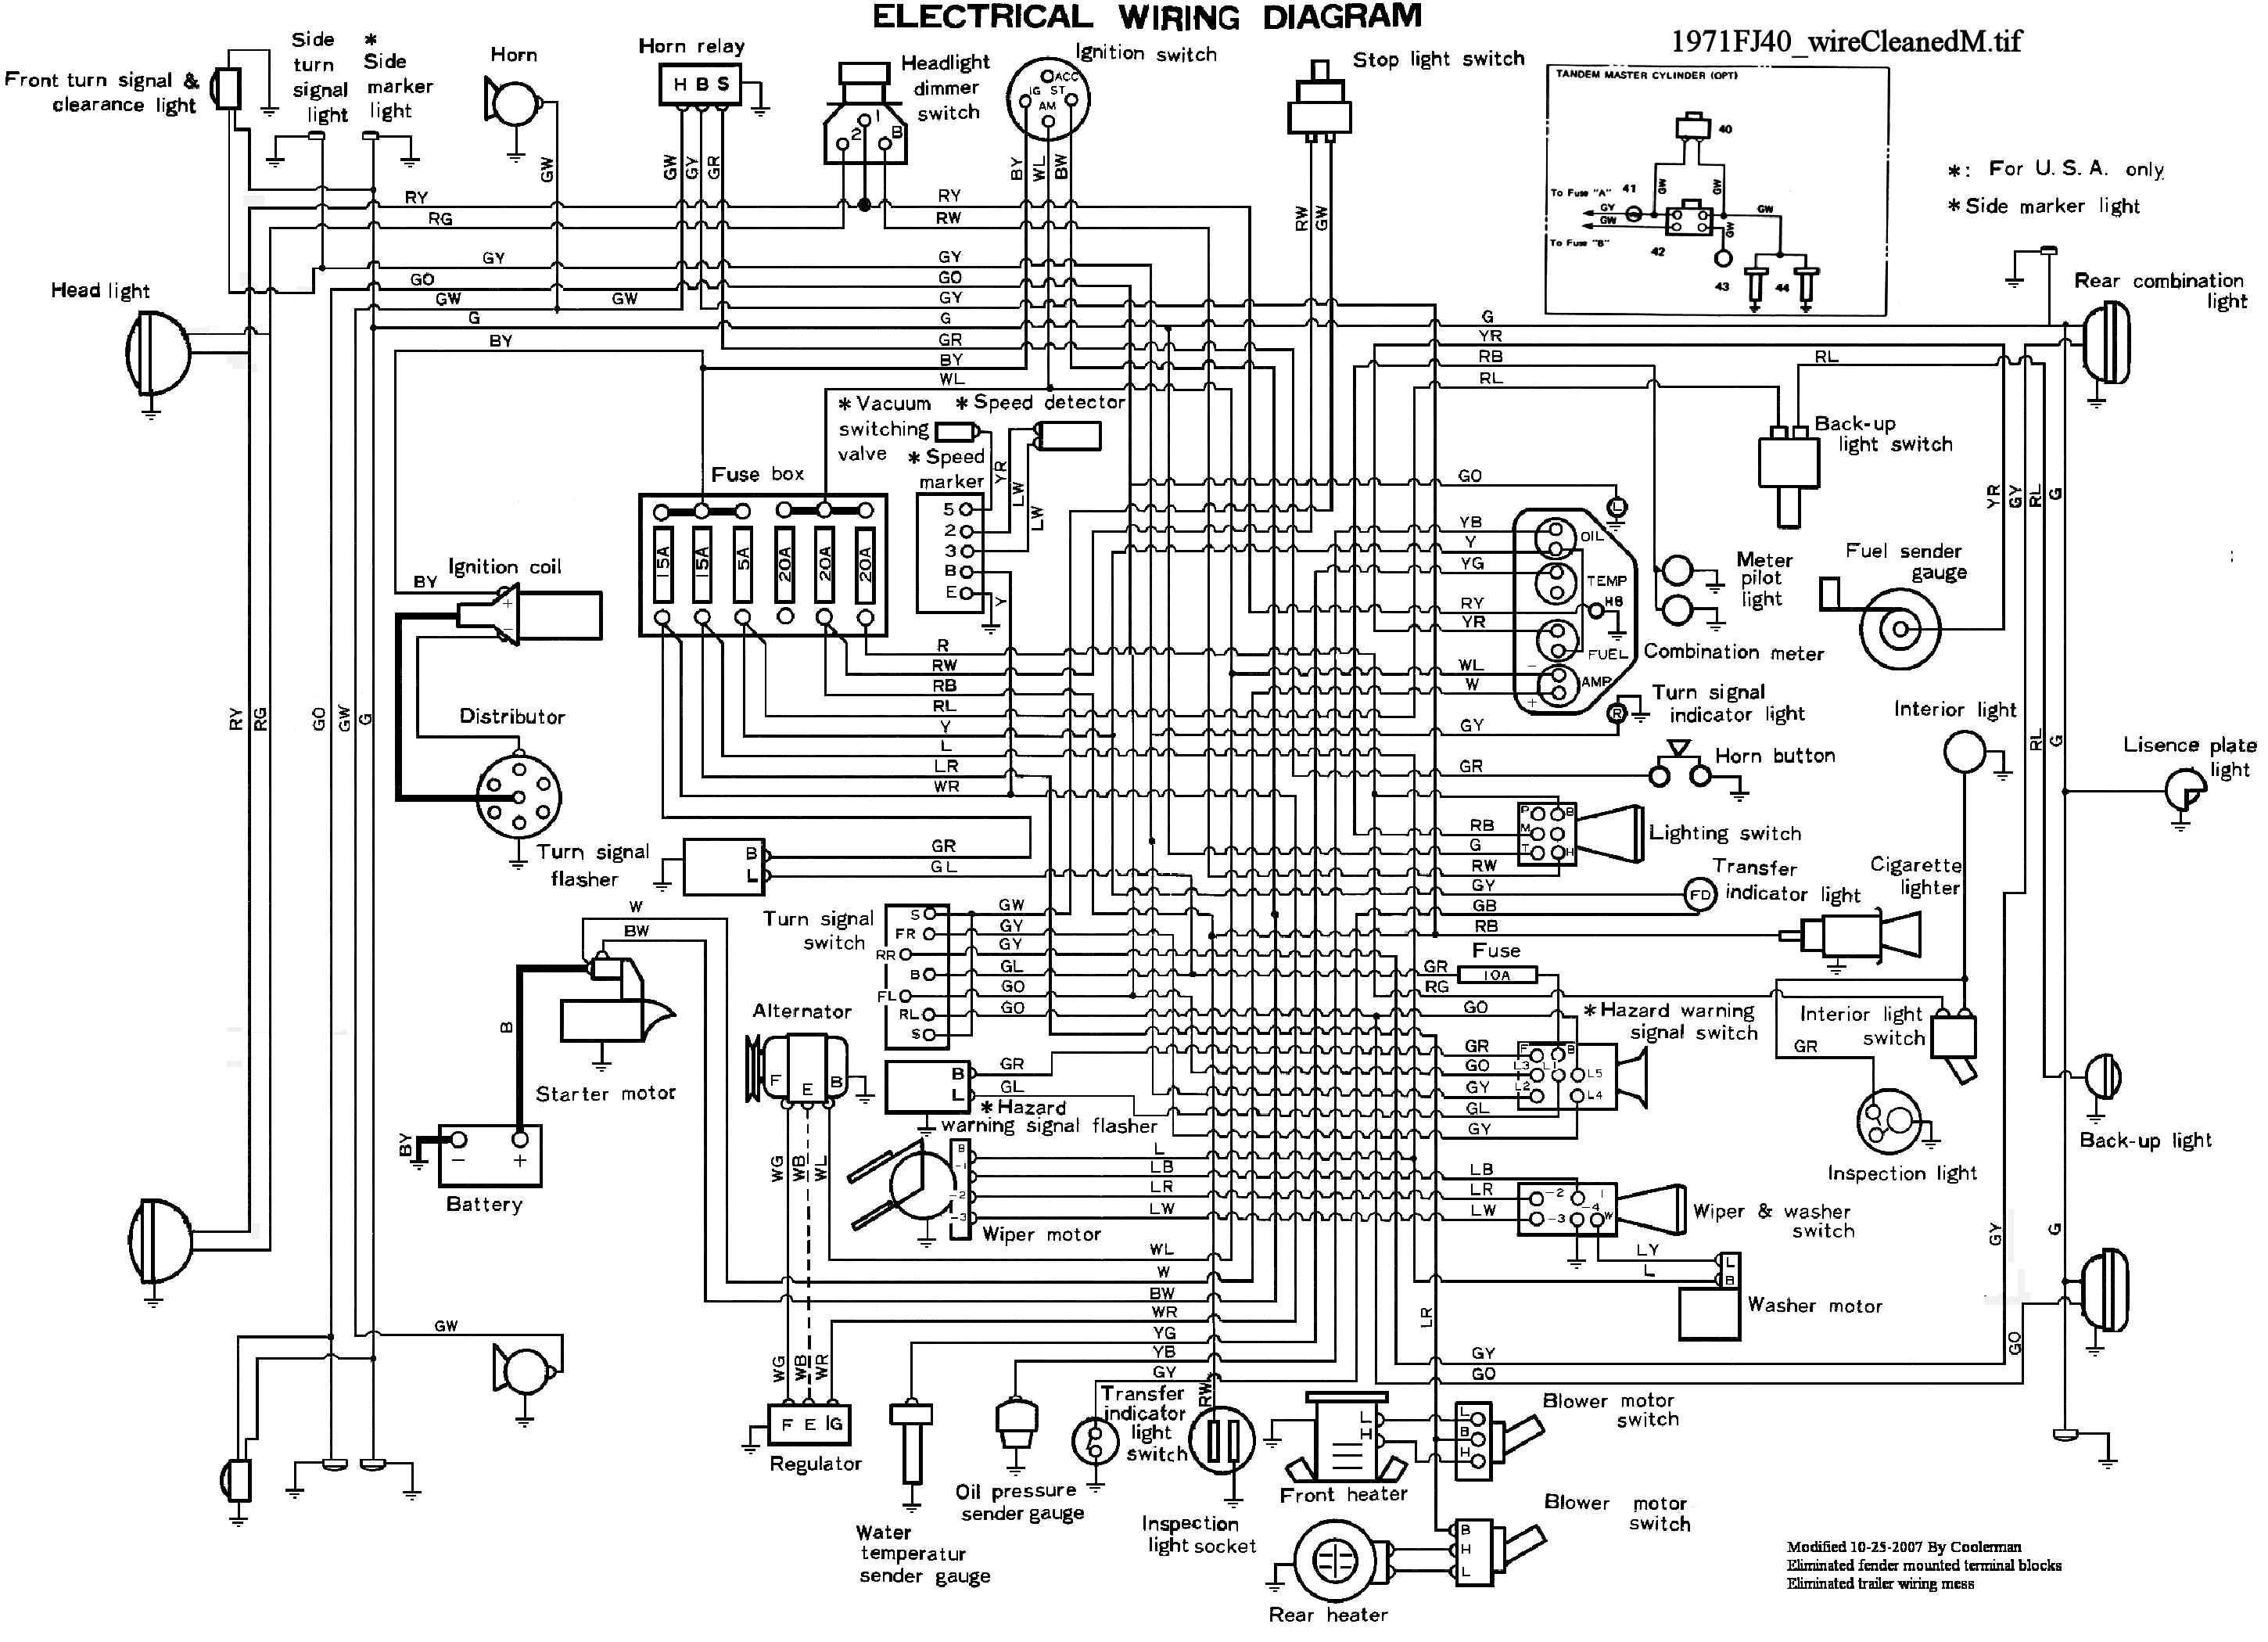 71fj40_wireCleanedM toyota v8 wiring diagram toyota wiring diagrams instruction vdj79 wiring diagram at gsmx.co